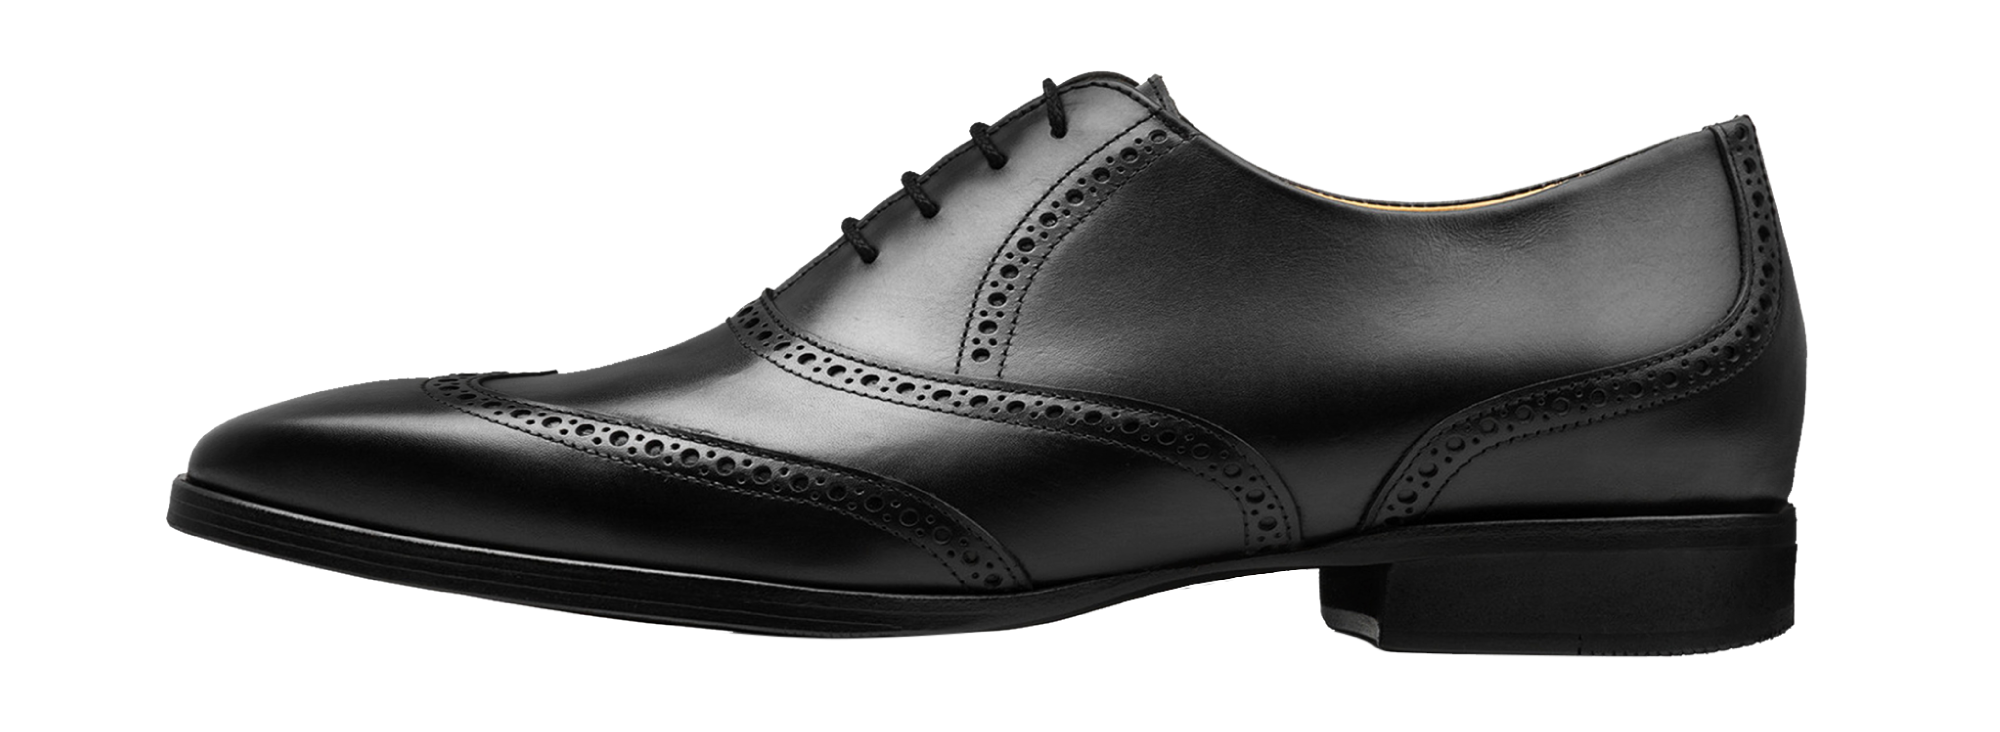 wolf shepherd s dress shoes most comfortable